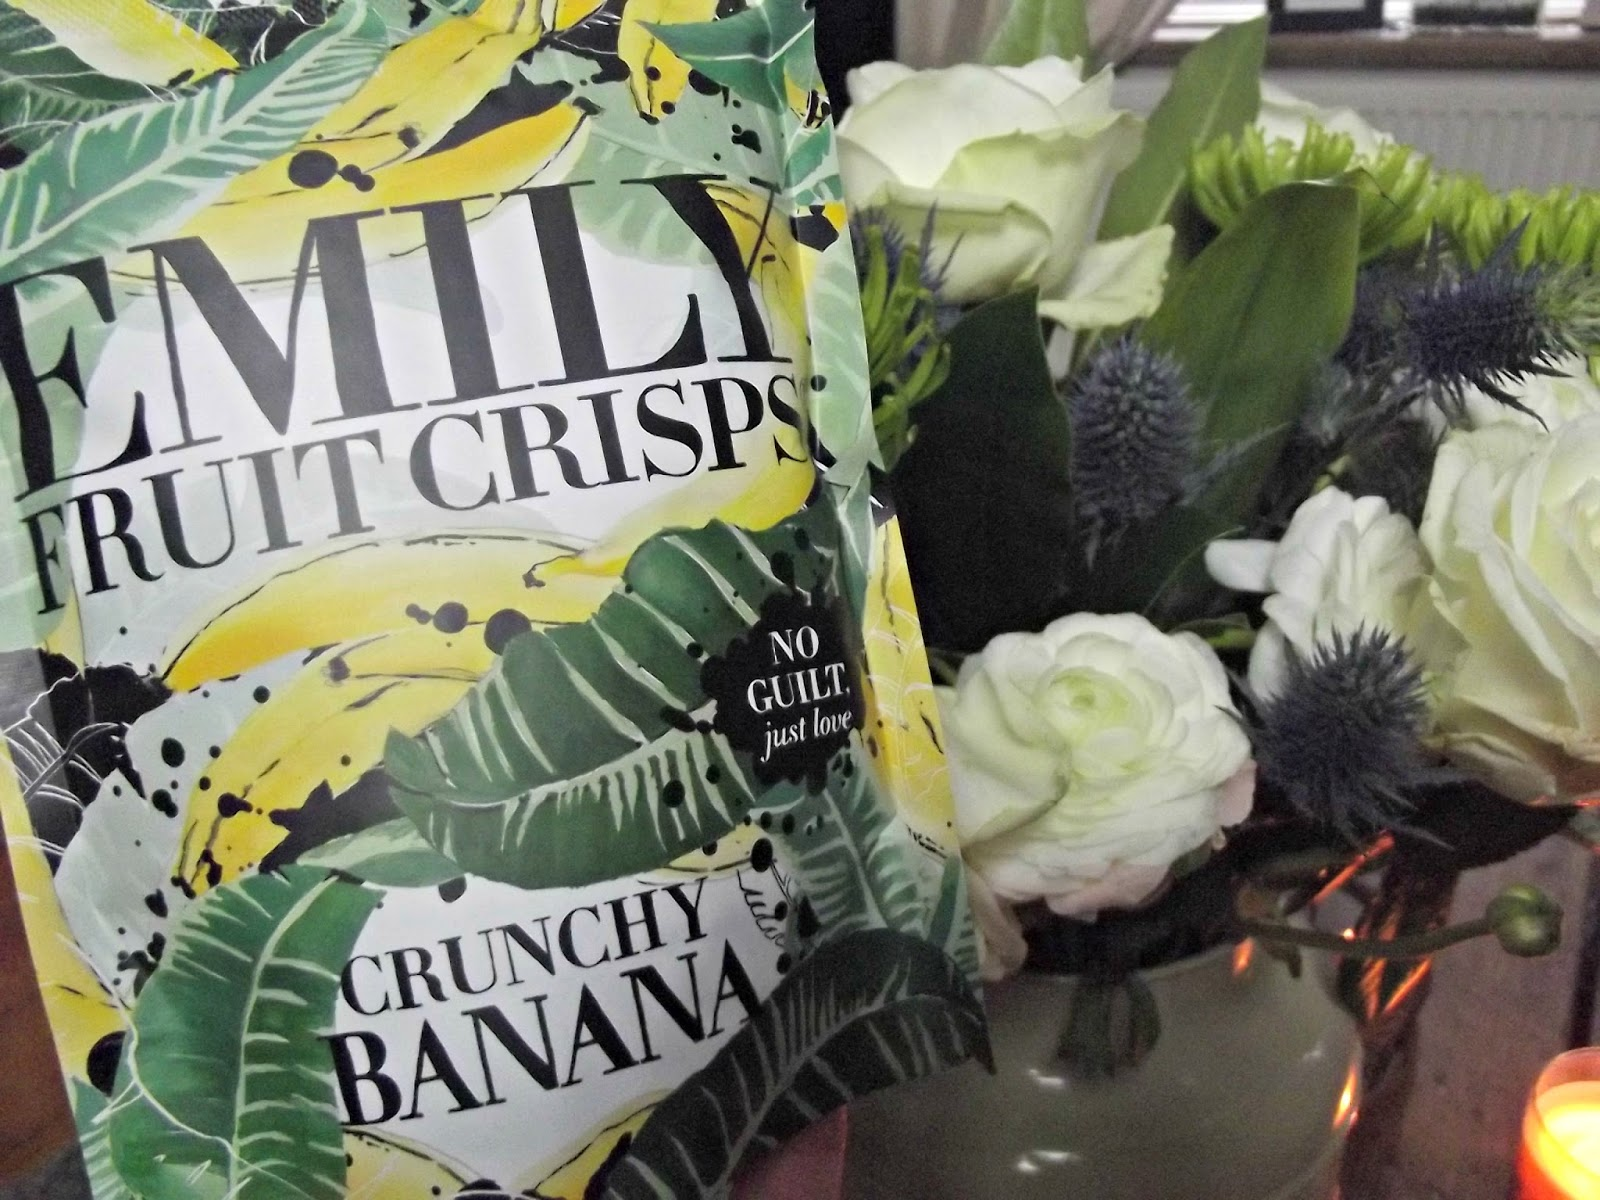 Emily Fruit Crisps Crunchy Banana